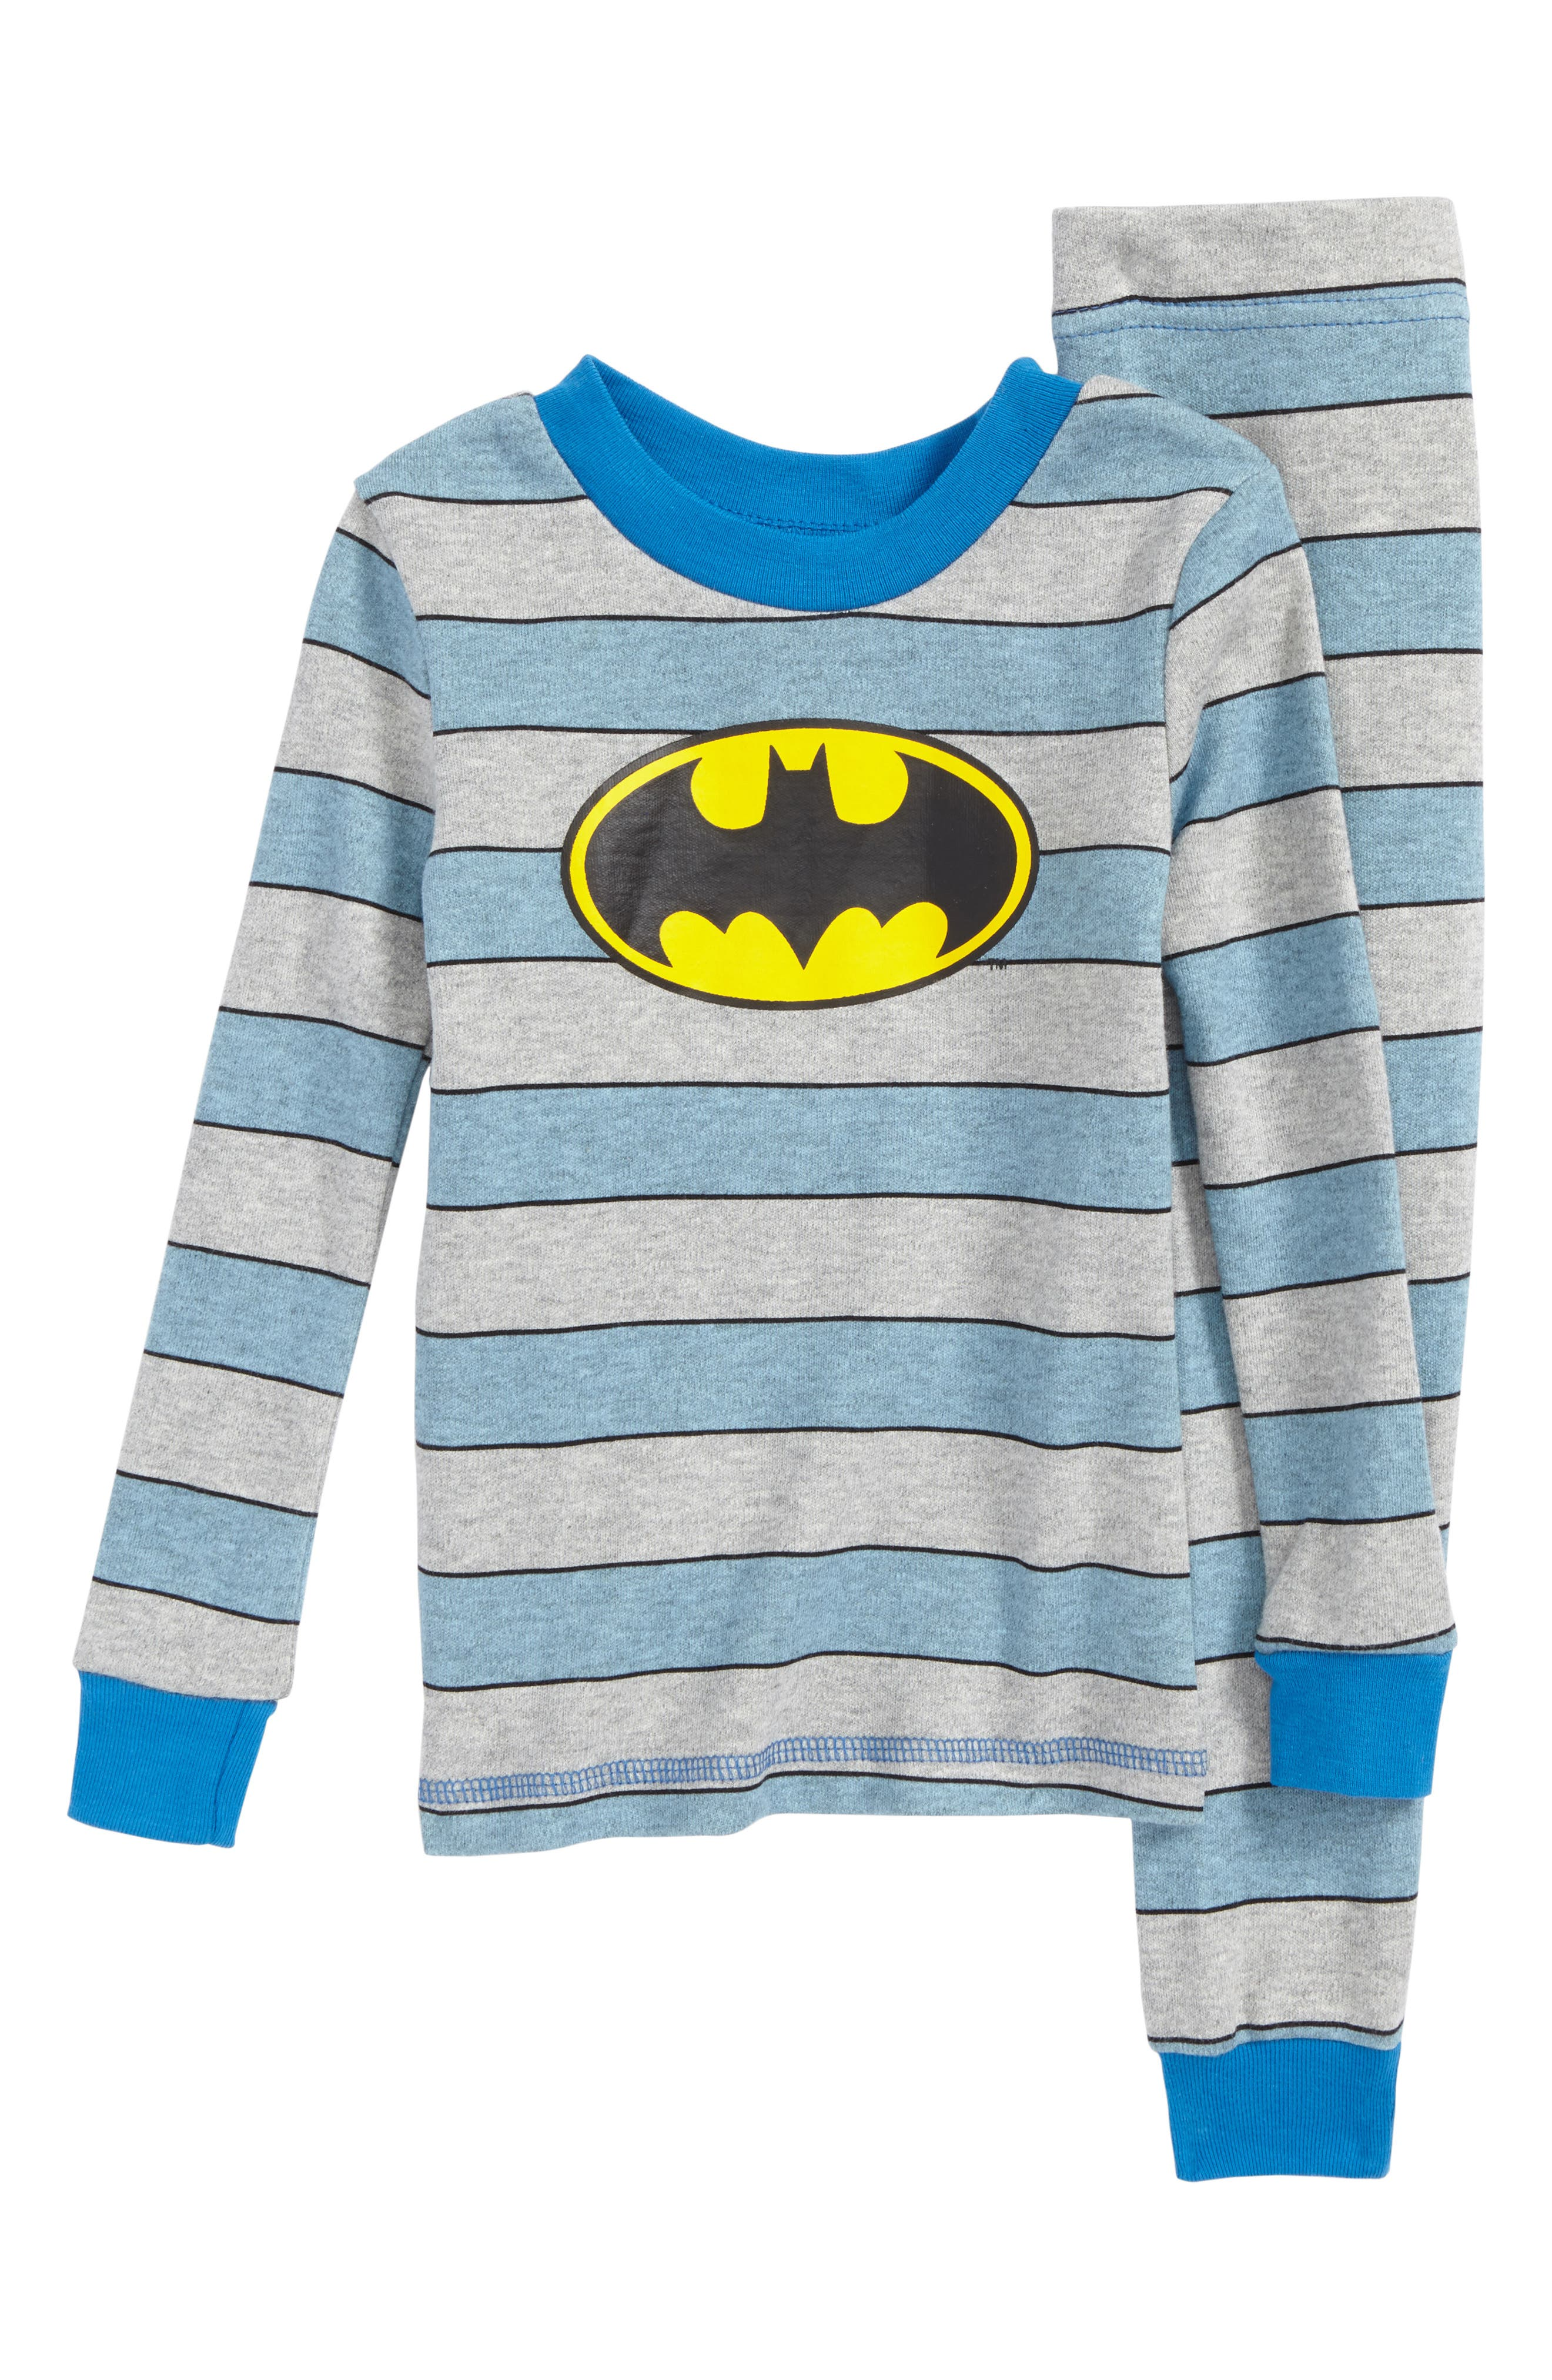 Batman Fitted Two-Piece Pajama Set,                         Main,                         color, Blue